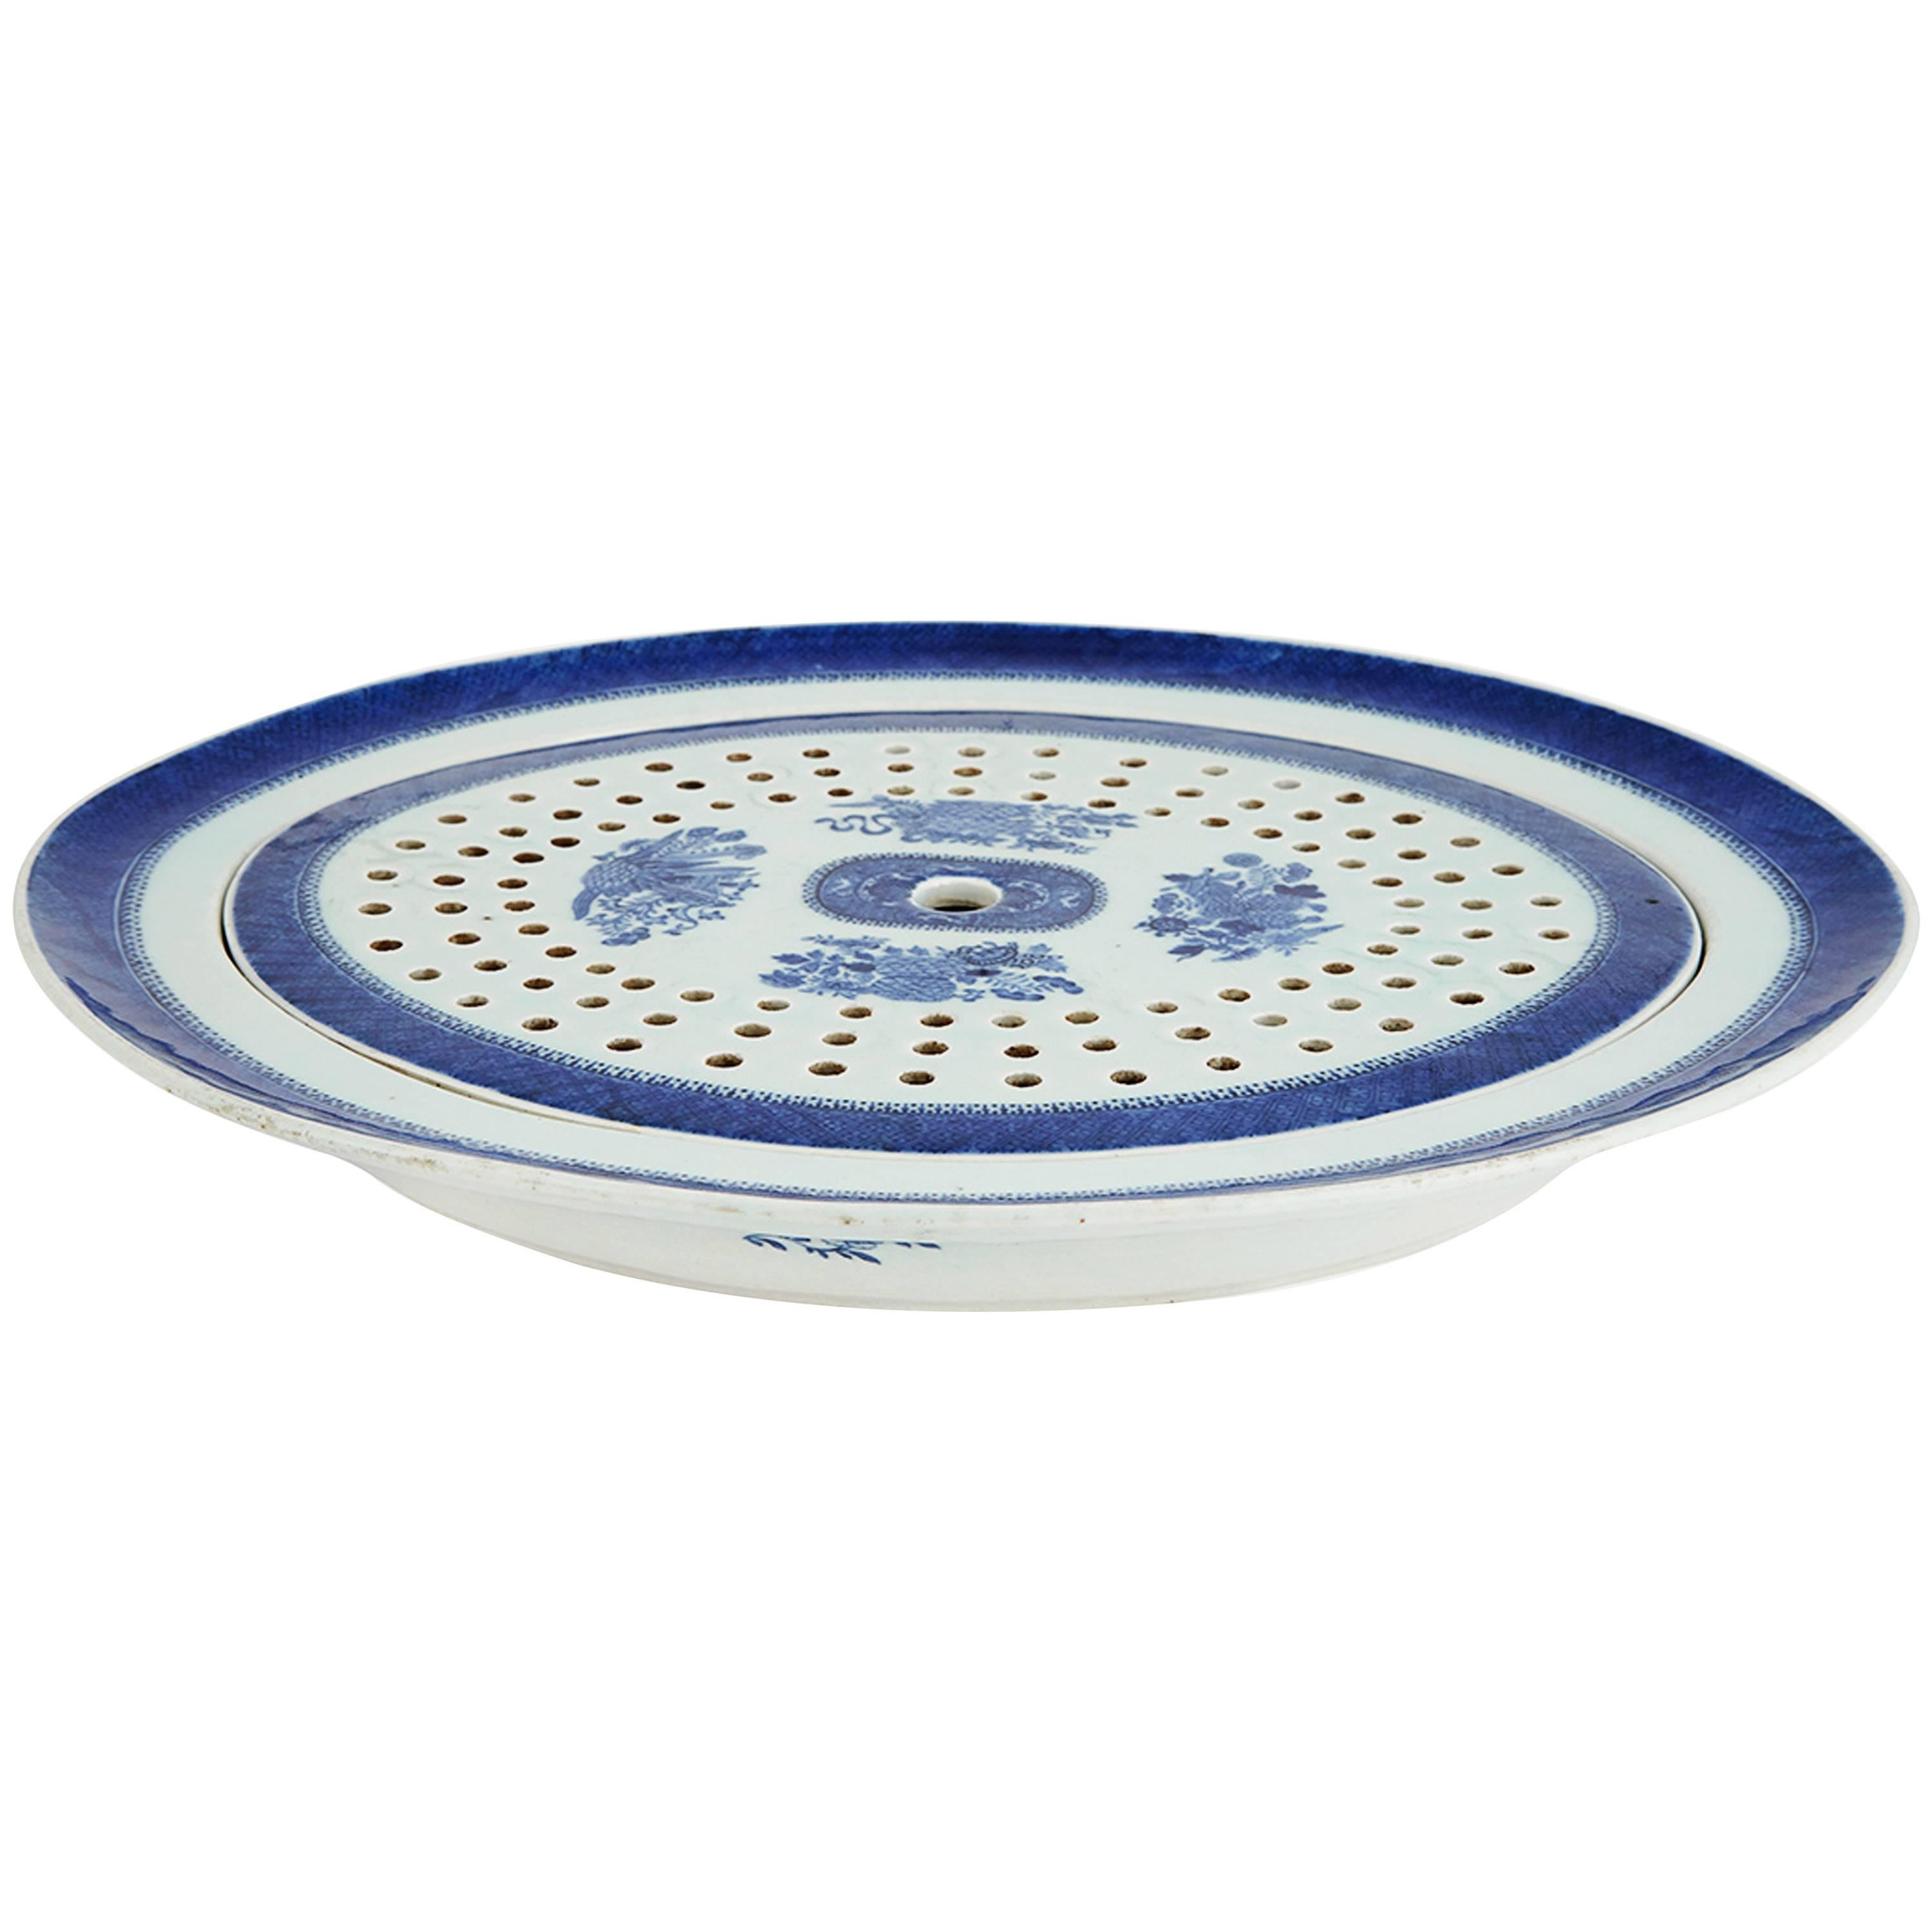 Chinese Export Porcelain Blue Fitzhugh Oval Platter and Mazarin